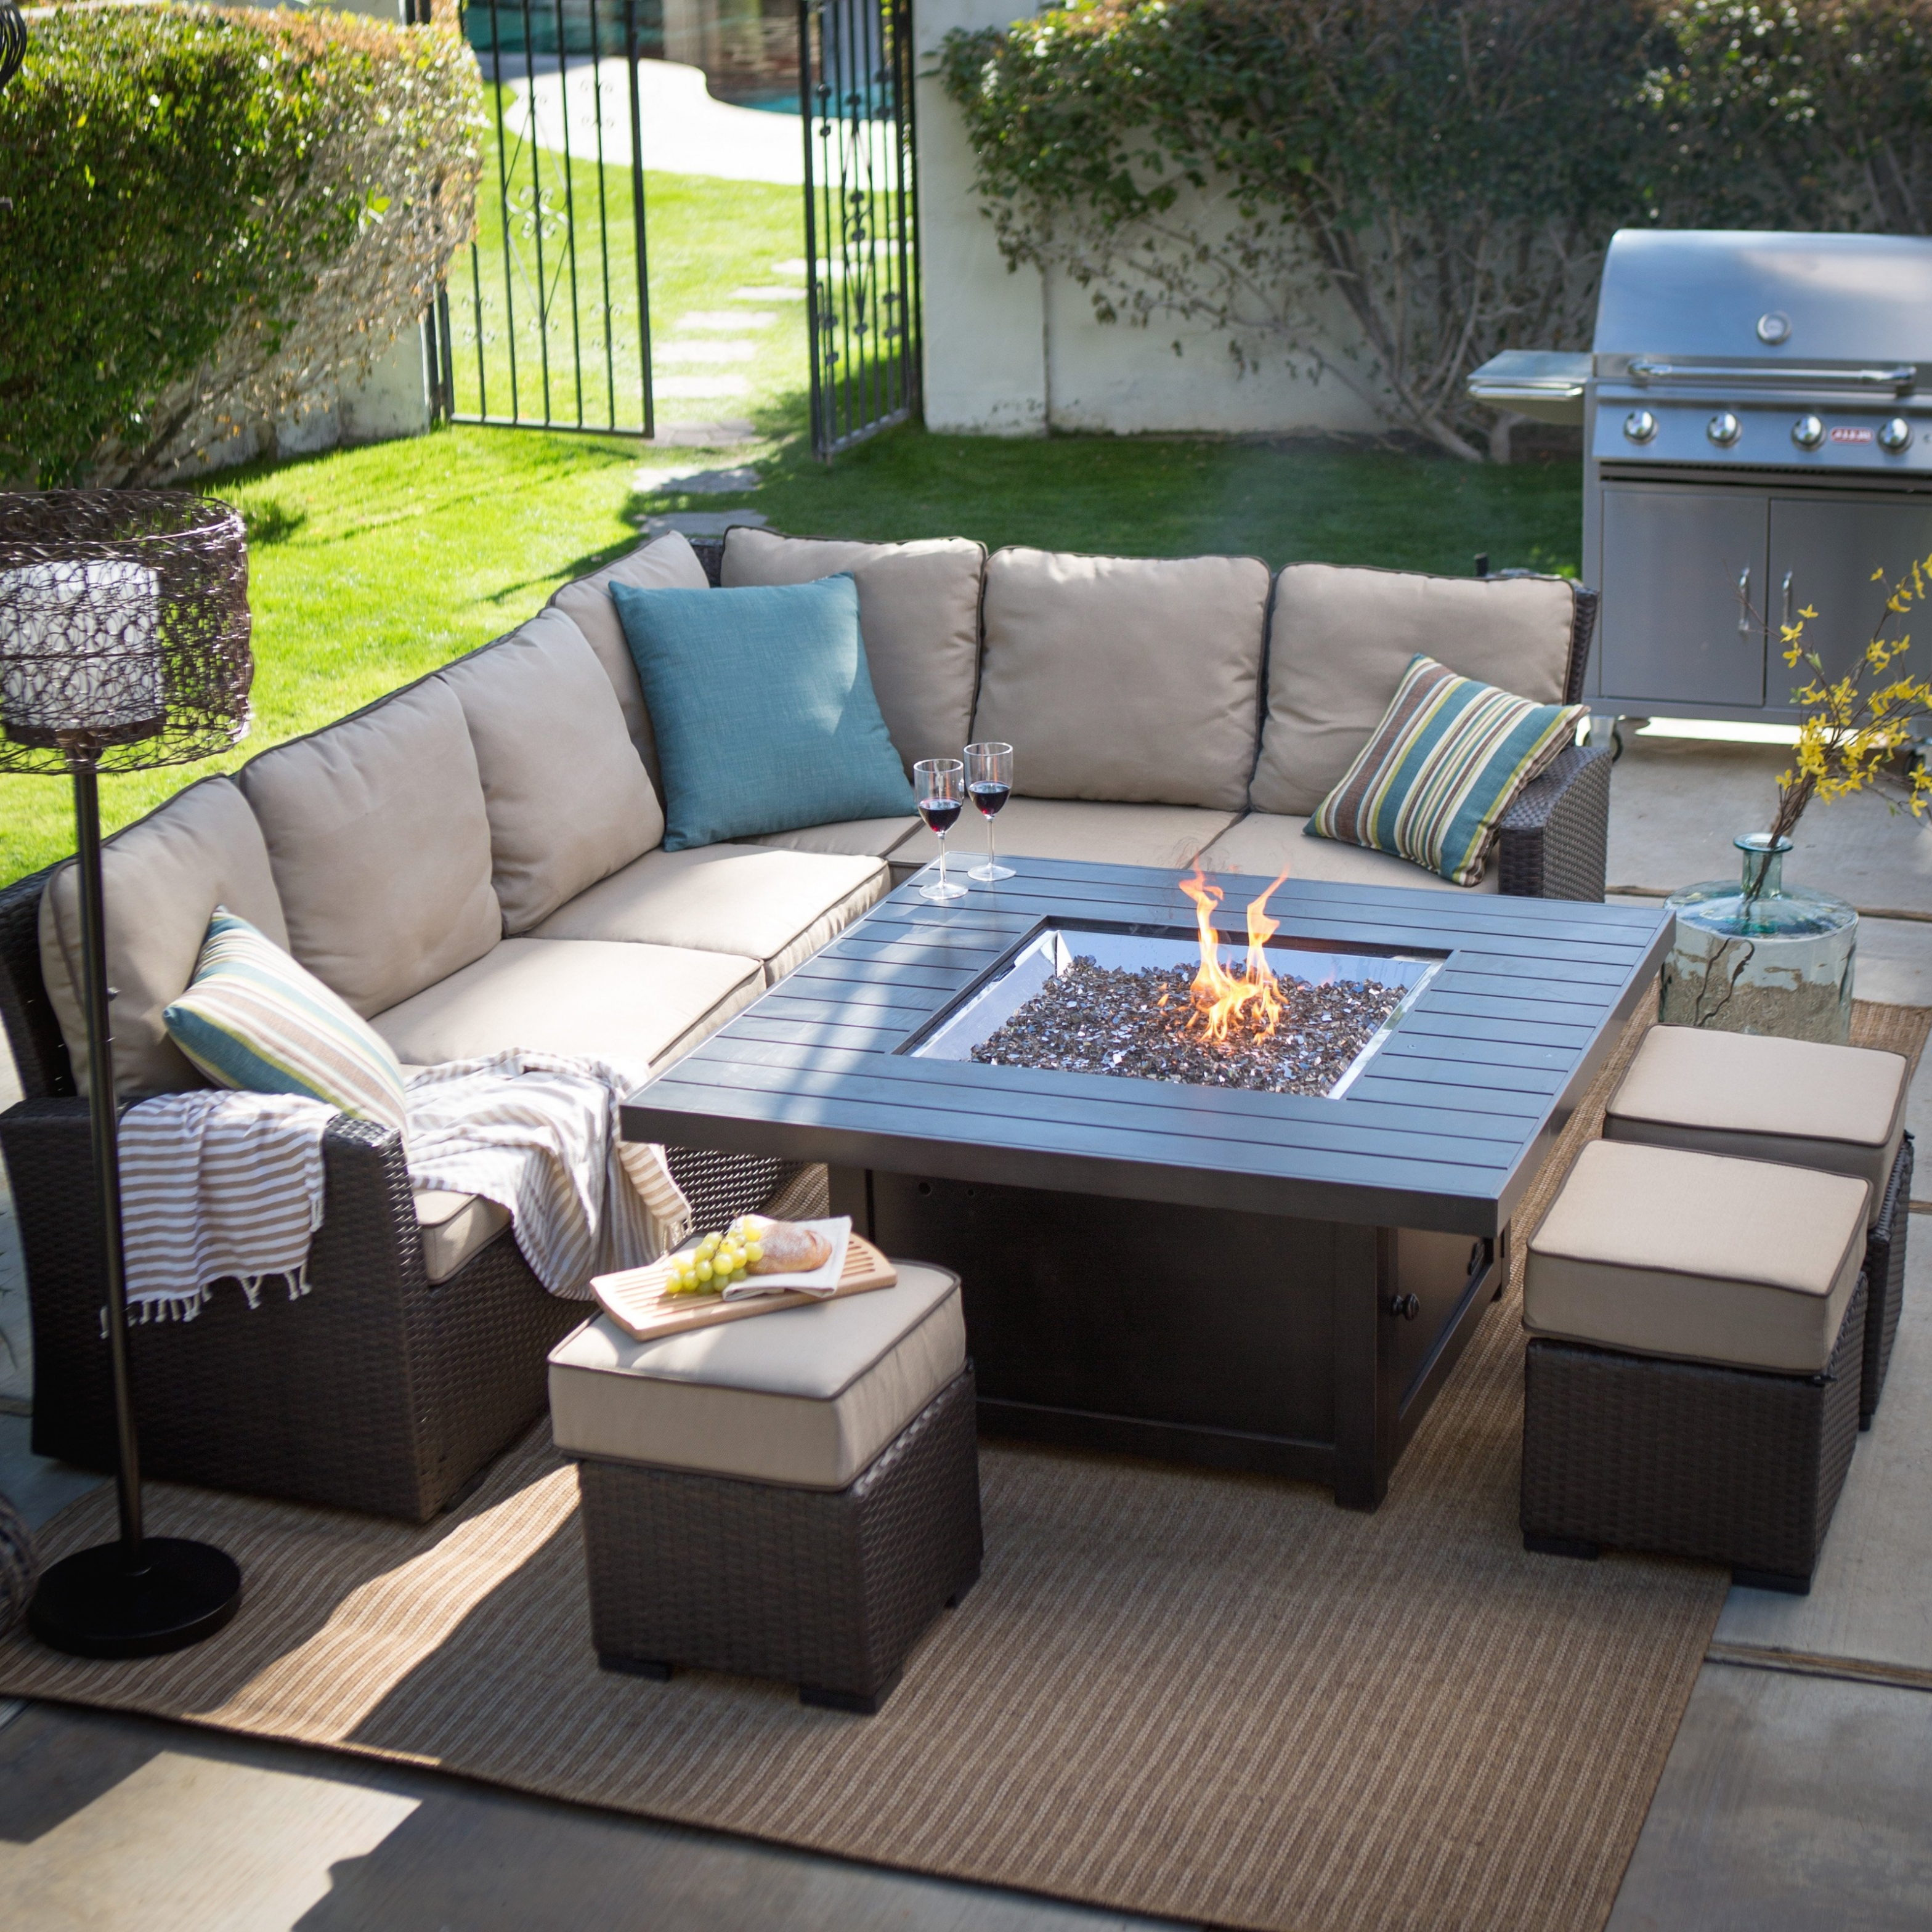 Latest Revisited Fire Pit Conversation Sets Shrewd Patio Furniture Decor With Patio Furniture Conversation Sets With Fire Pit (View 9 of 15)